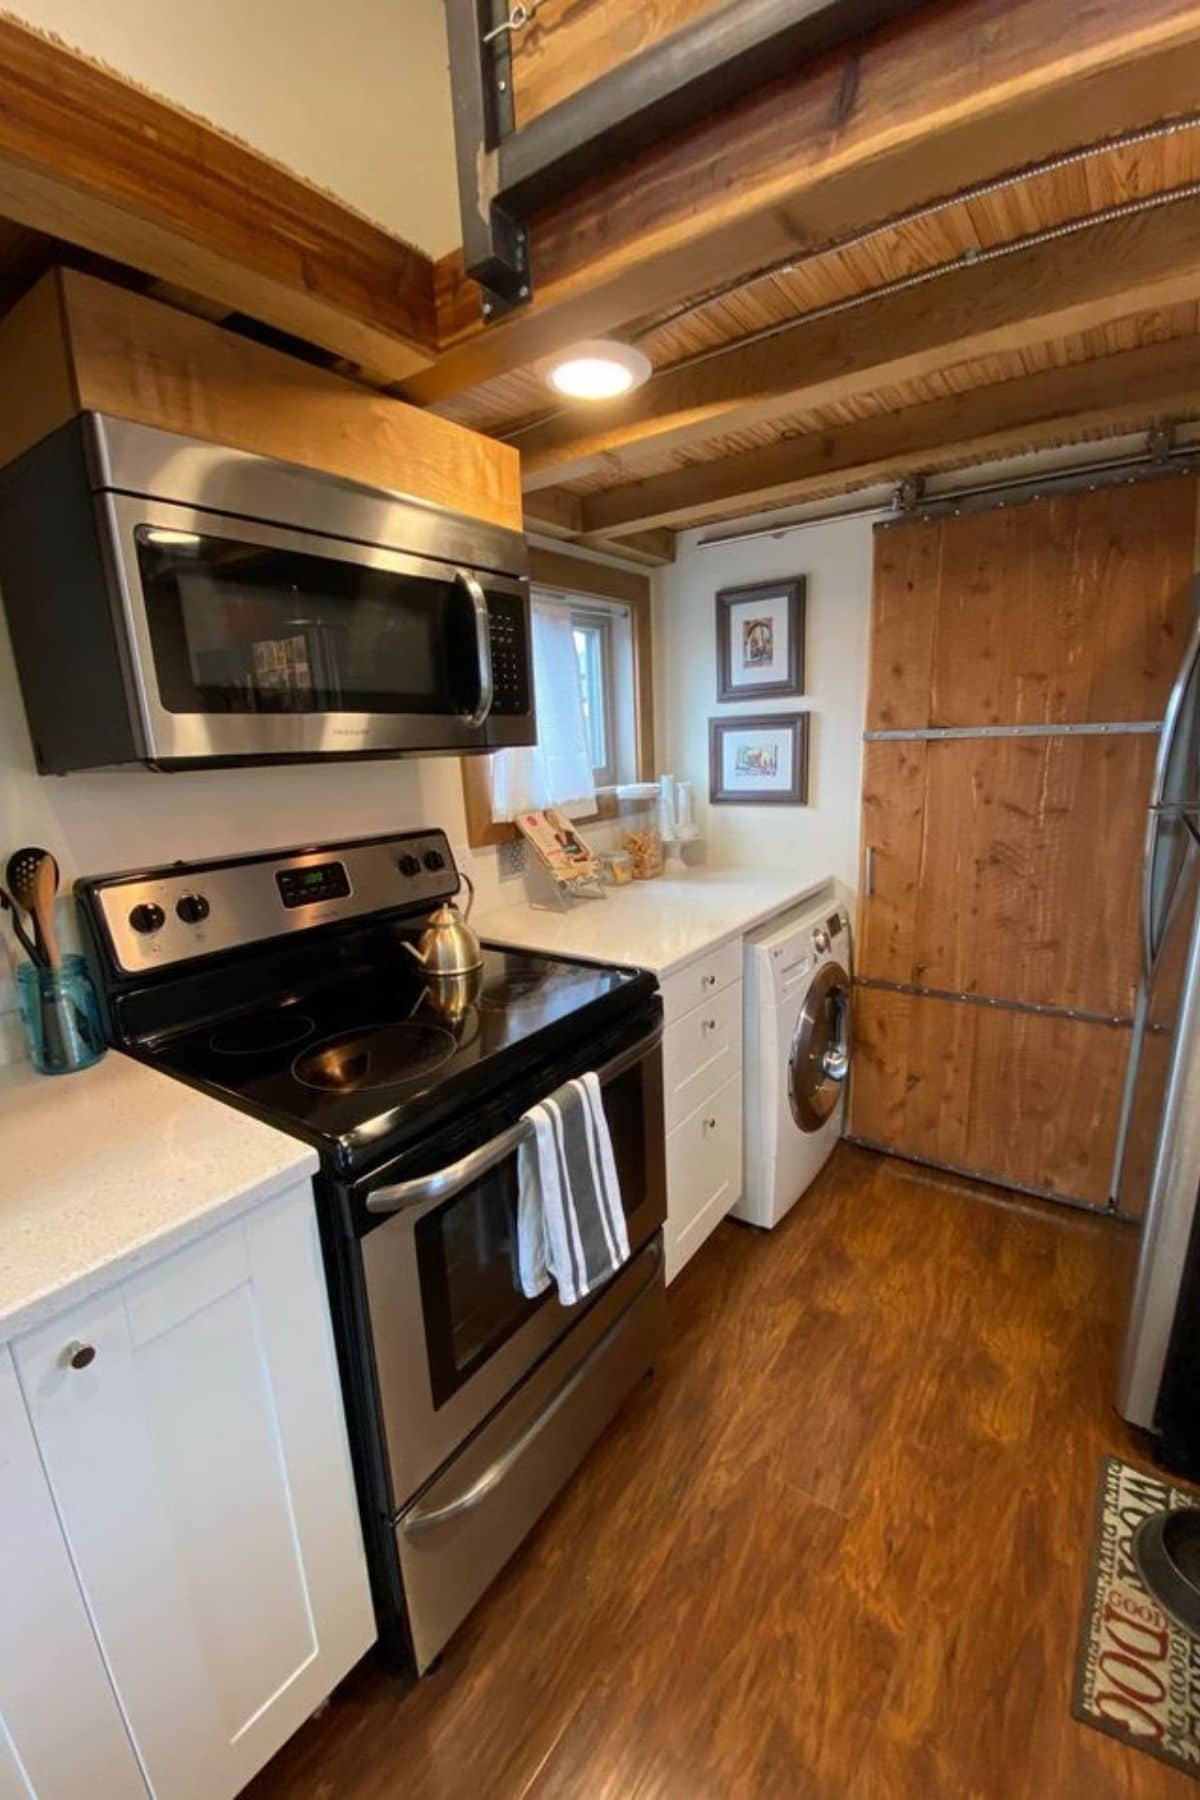 Stainless steel stove in white cabinets of tiny house kitchen